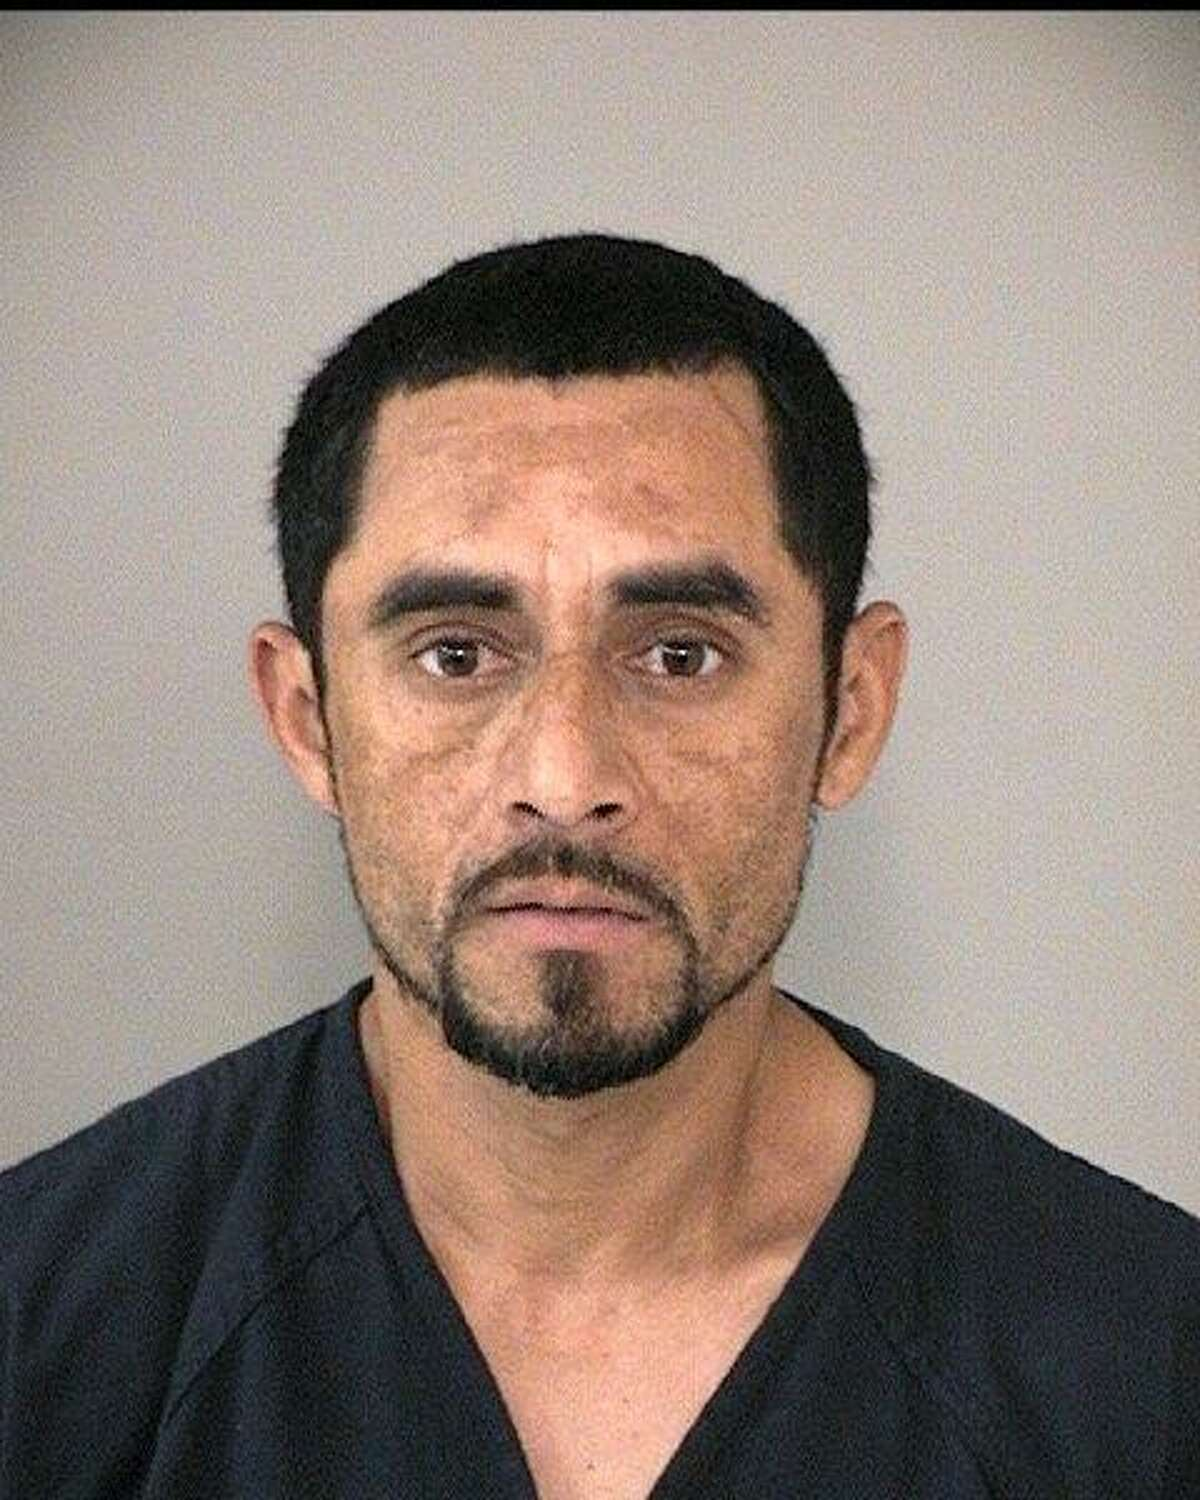 Marlon Zavala who was charged in a hit-and-run that killed an elderly woman in January 2020, has been sentenced to 14 years in prison.